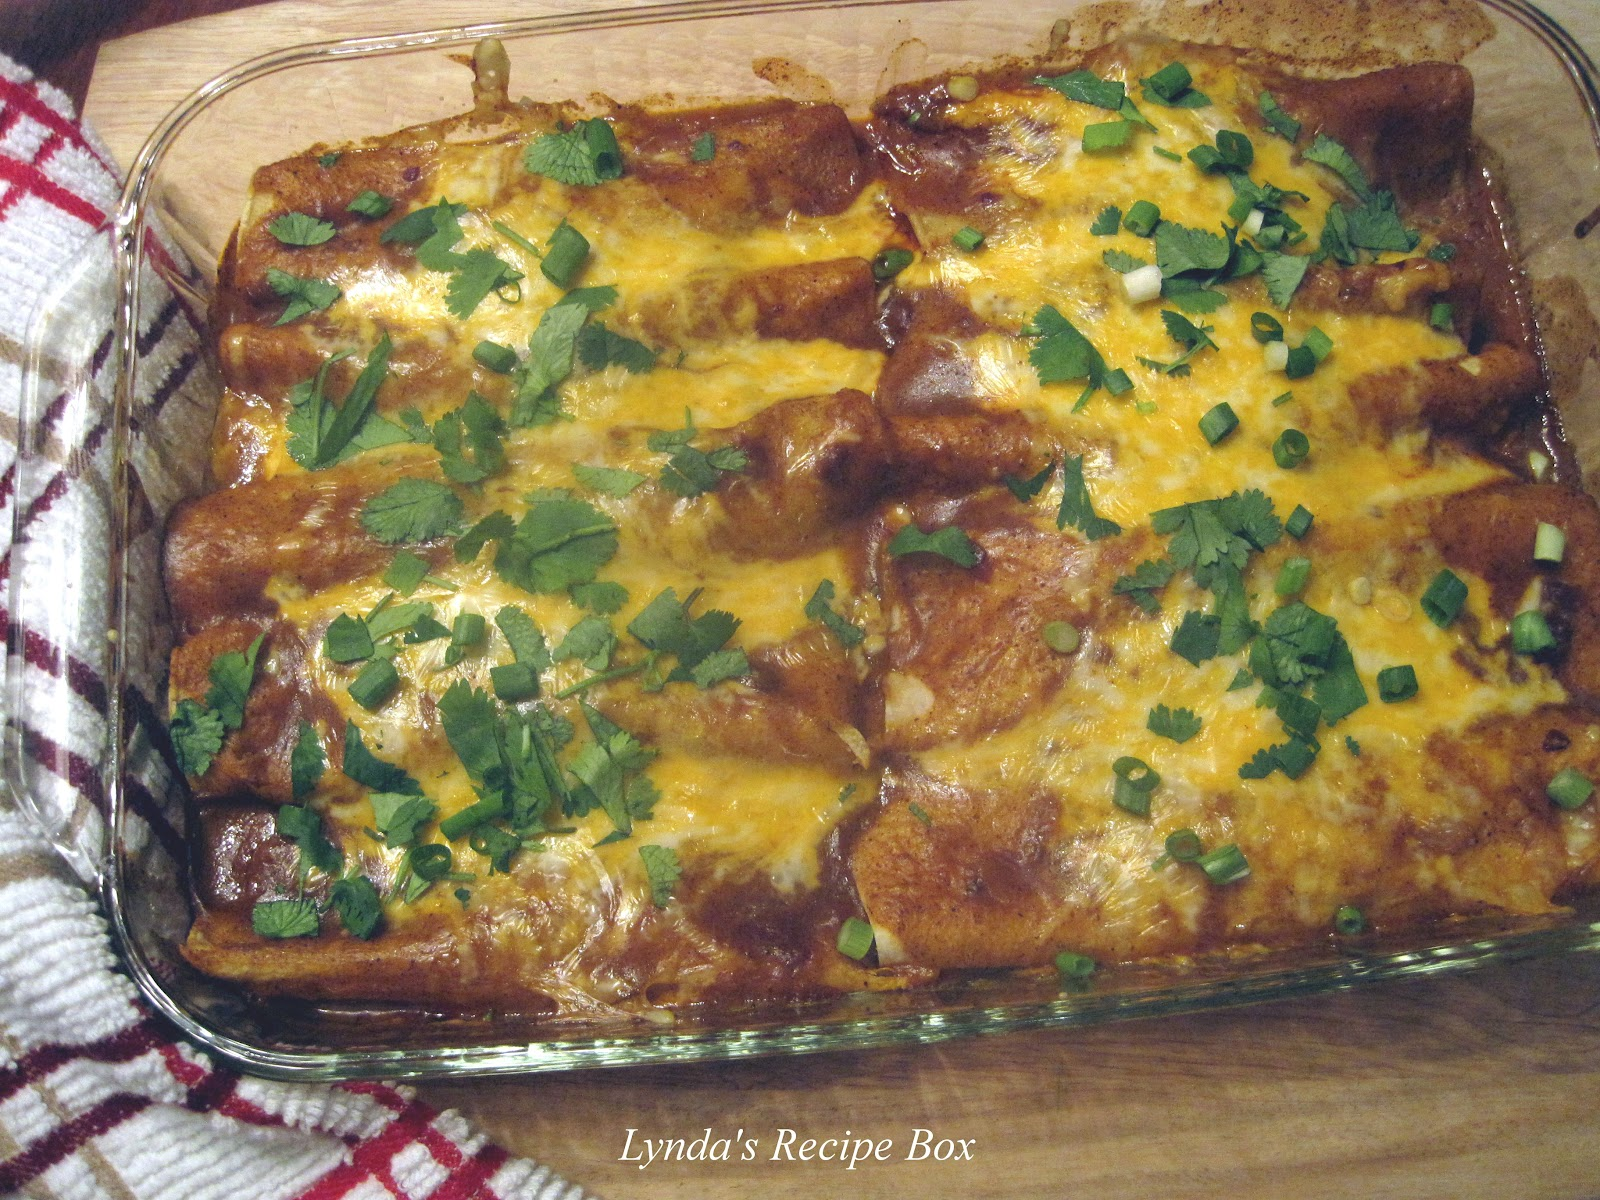 Lynda's Recipe Box: Tex - Mex Beef Enchiladas - ground beef filling ...